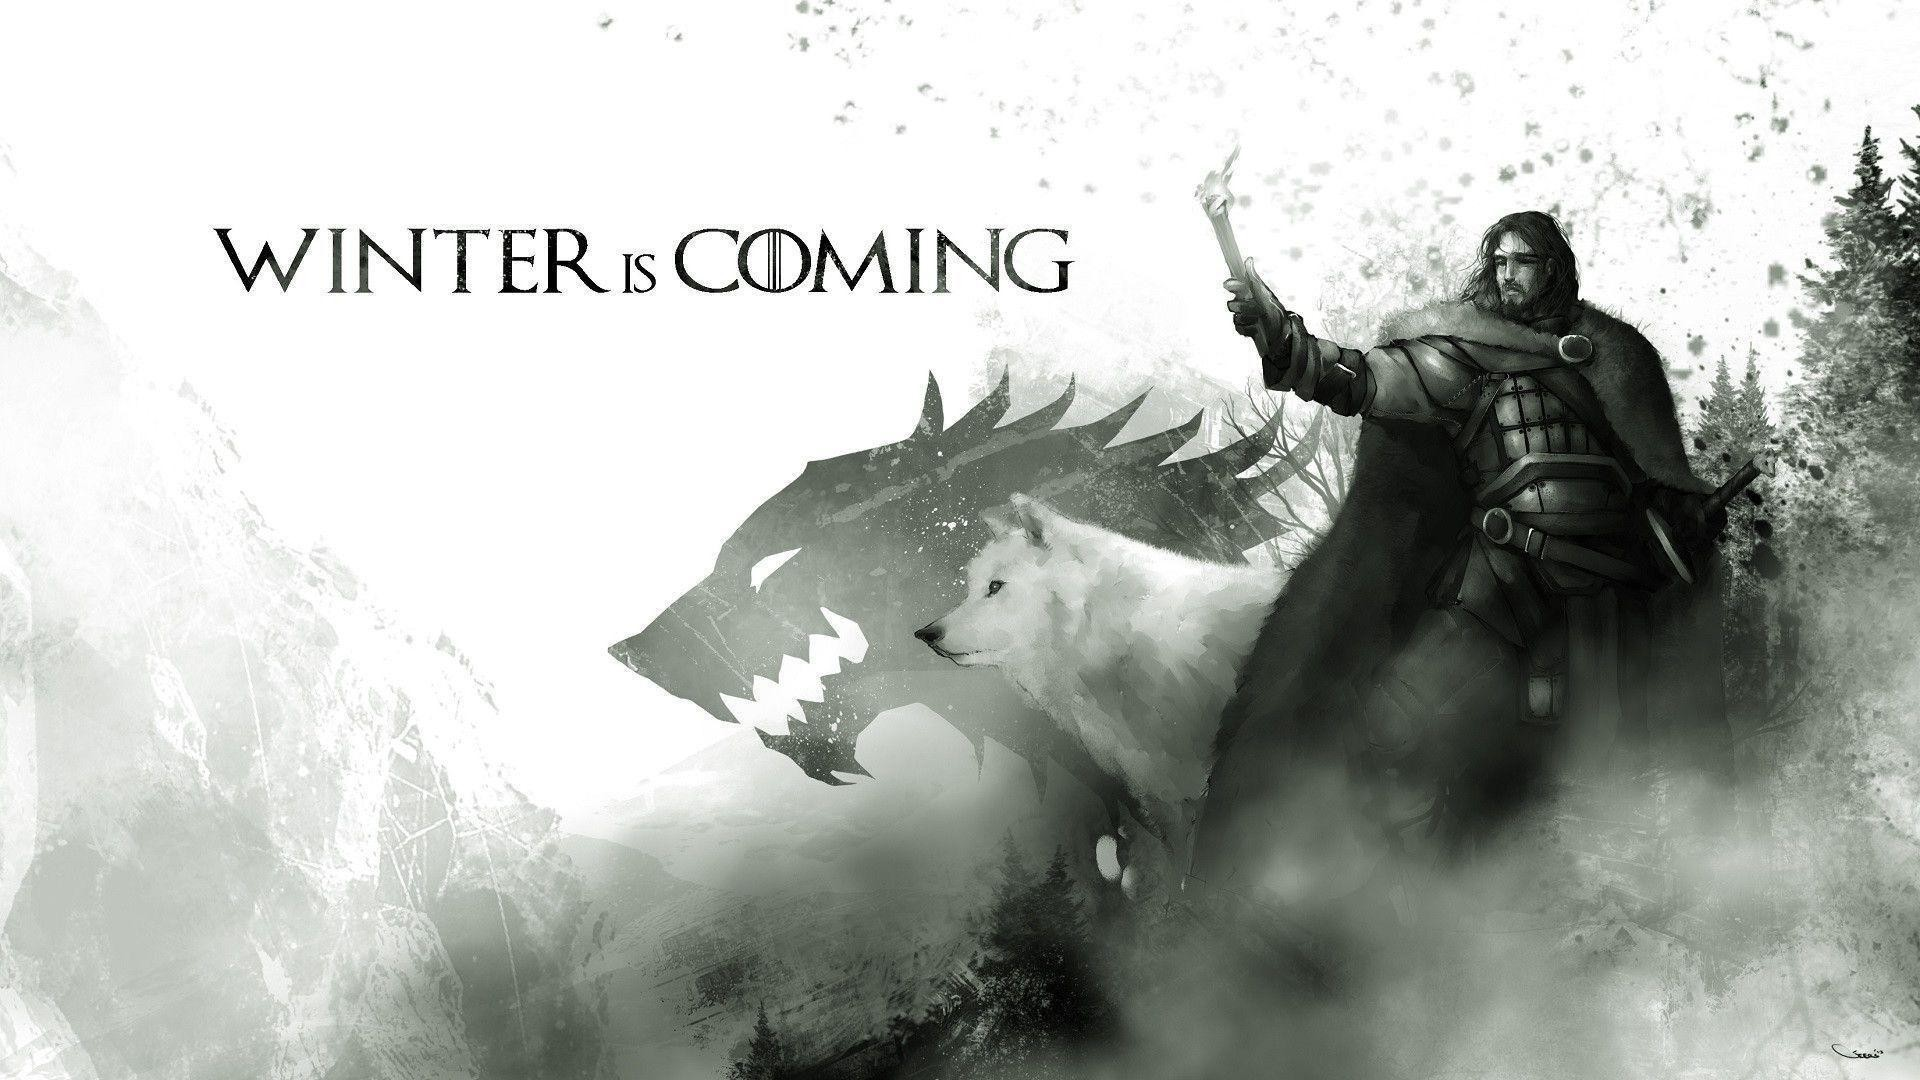 Wallpapers For > Game Of Thrones Wallpaper Hd Winter Is Coming